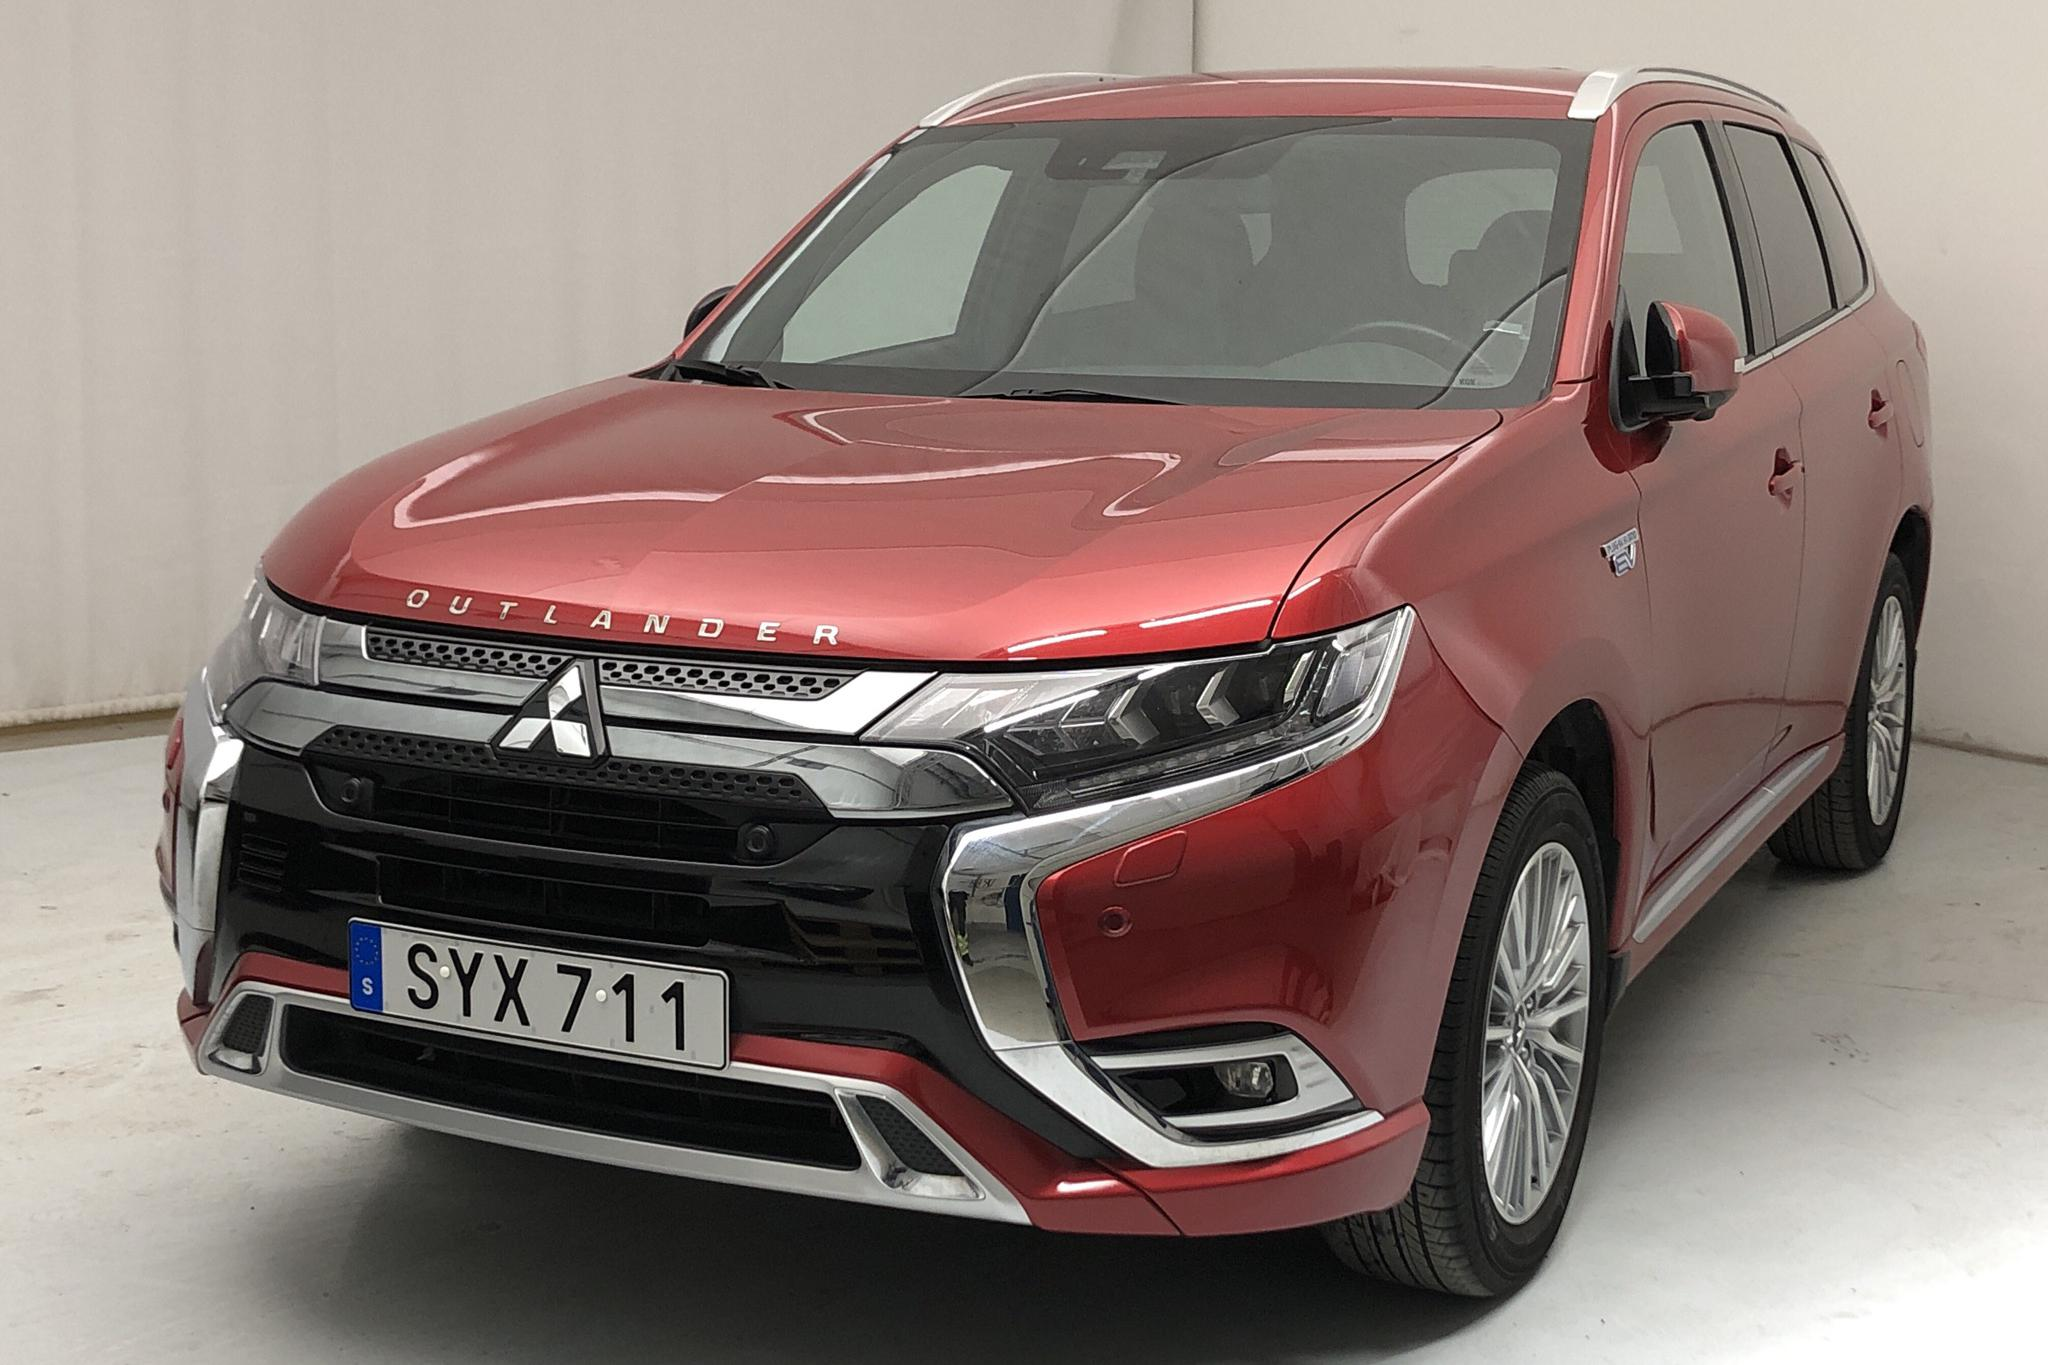 Mitsubishi Outlander 2.4 Plug-in Hybrid 4WD (136hk) - 32 590 km - Automatic - red - 2019